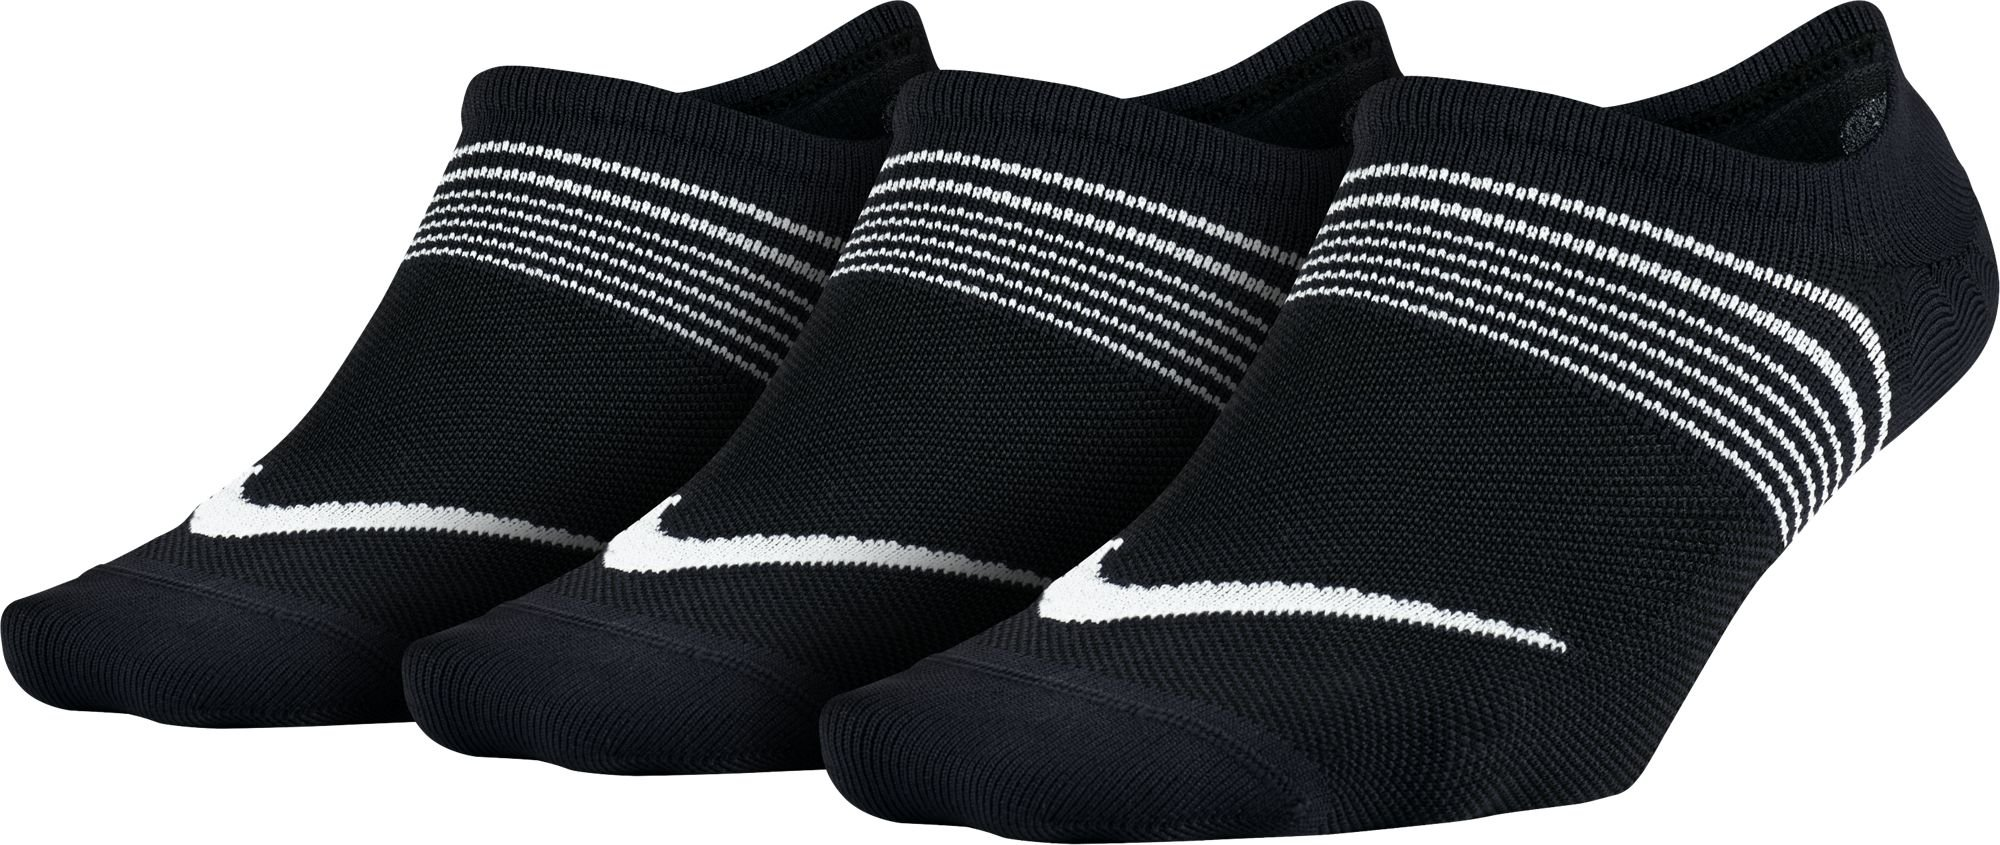 NIKE Women's Everyday Plus Lightweight Footies (3 Pairs), Black/White, Medium